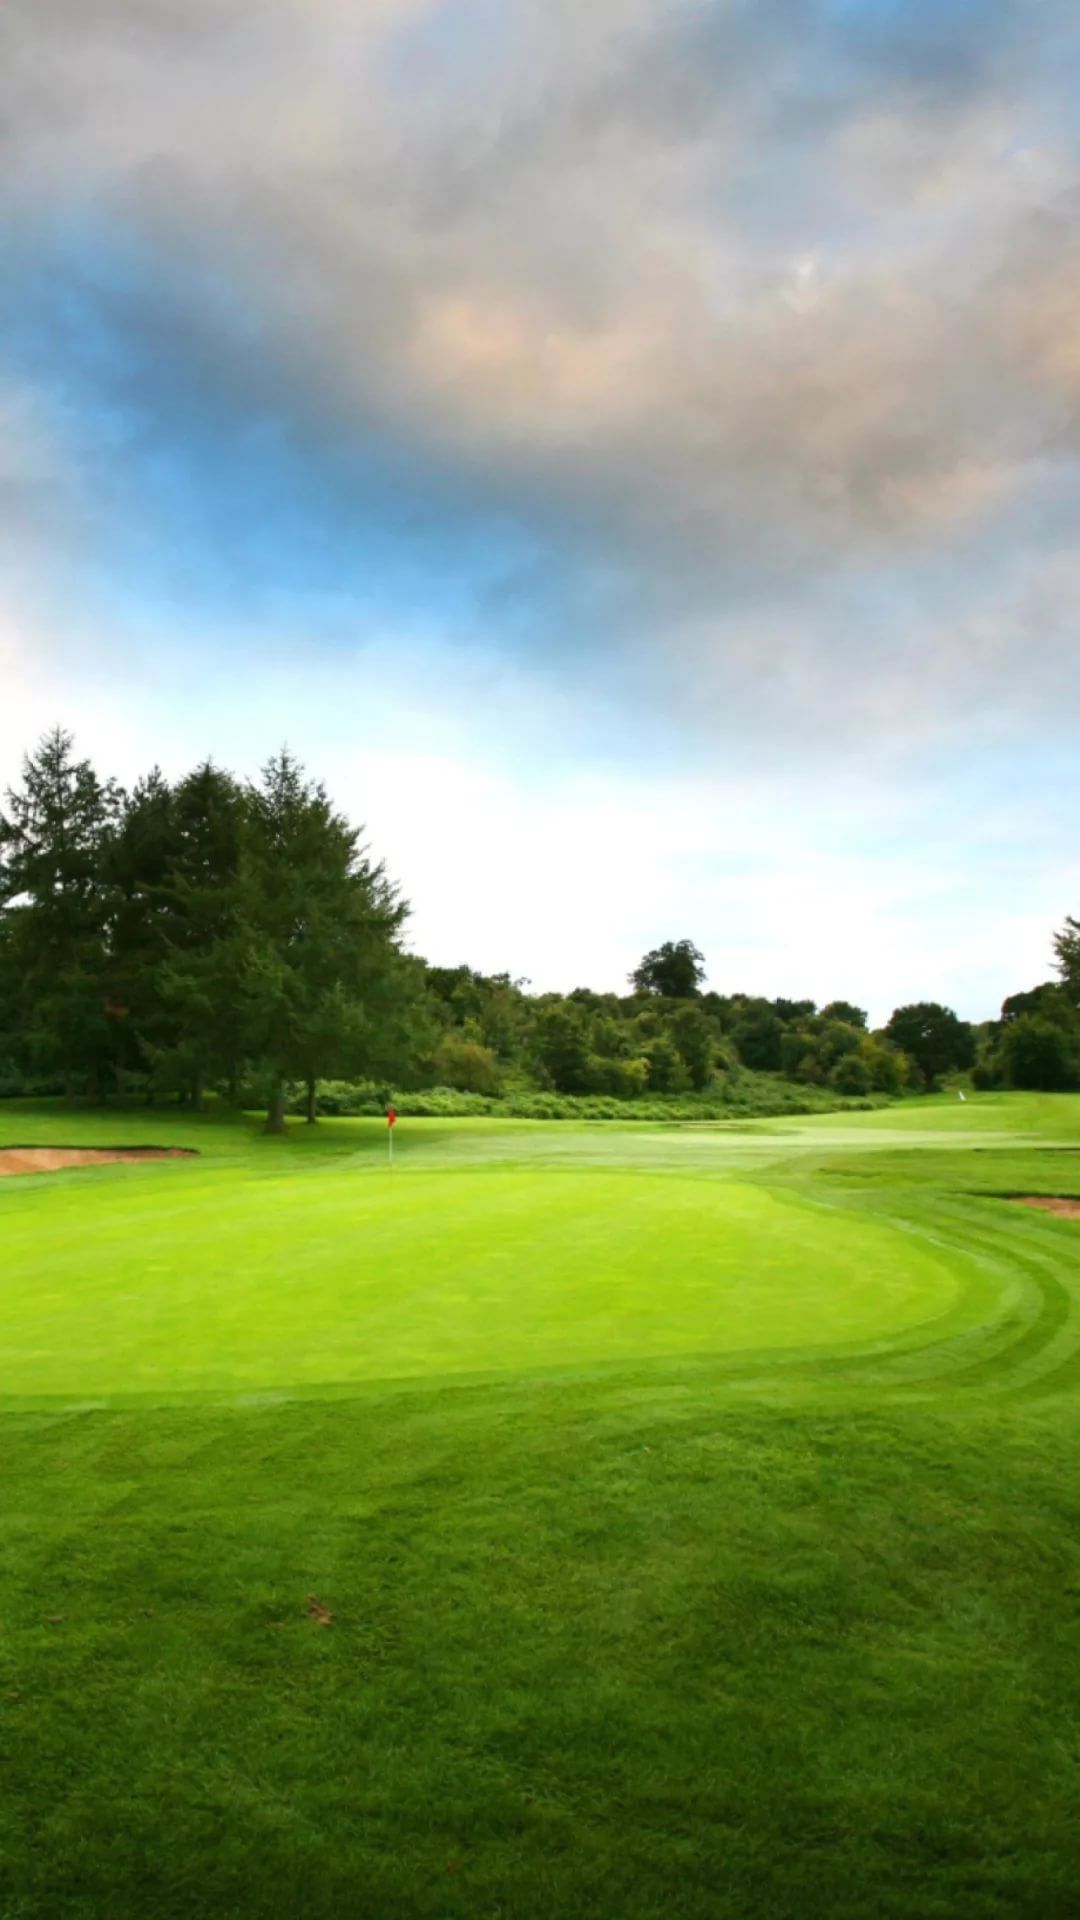 Golf Background Picture Wallpapers Vintage Hd Wallpaper Vintage Aesthetic Iphone Wallpaper